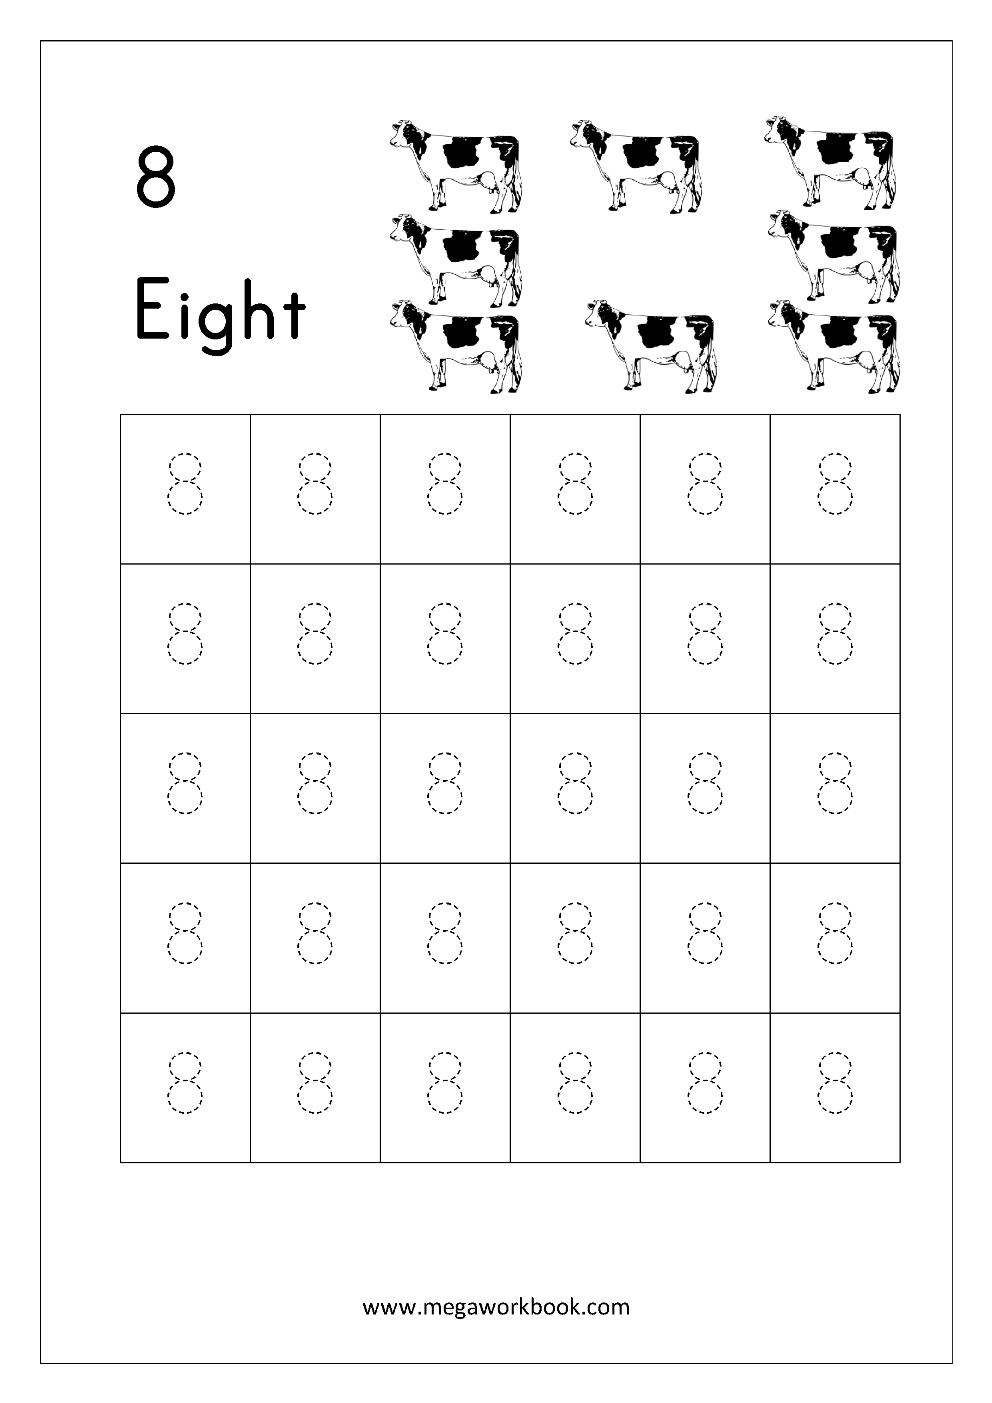 Number Tracing - Tracing Numbers - Number Tracing Worksheets in Letter 8 Tracing